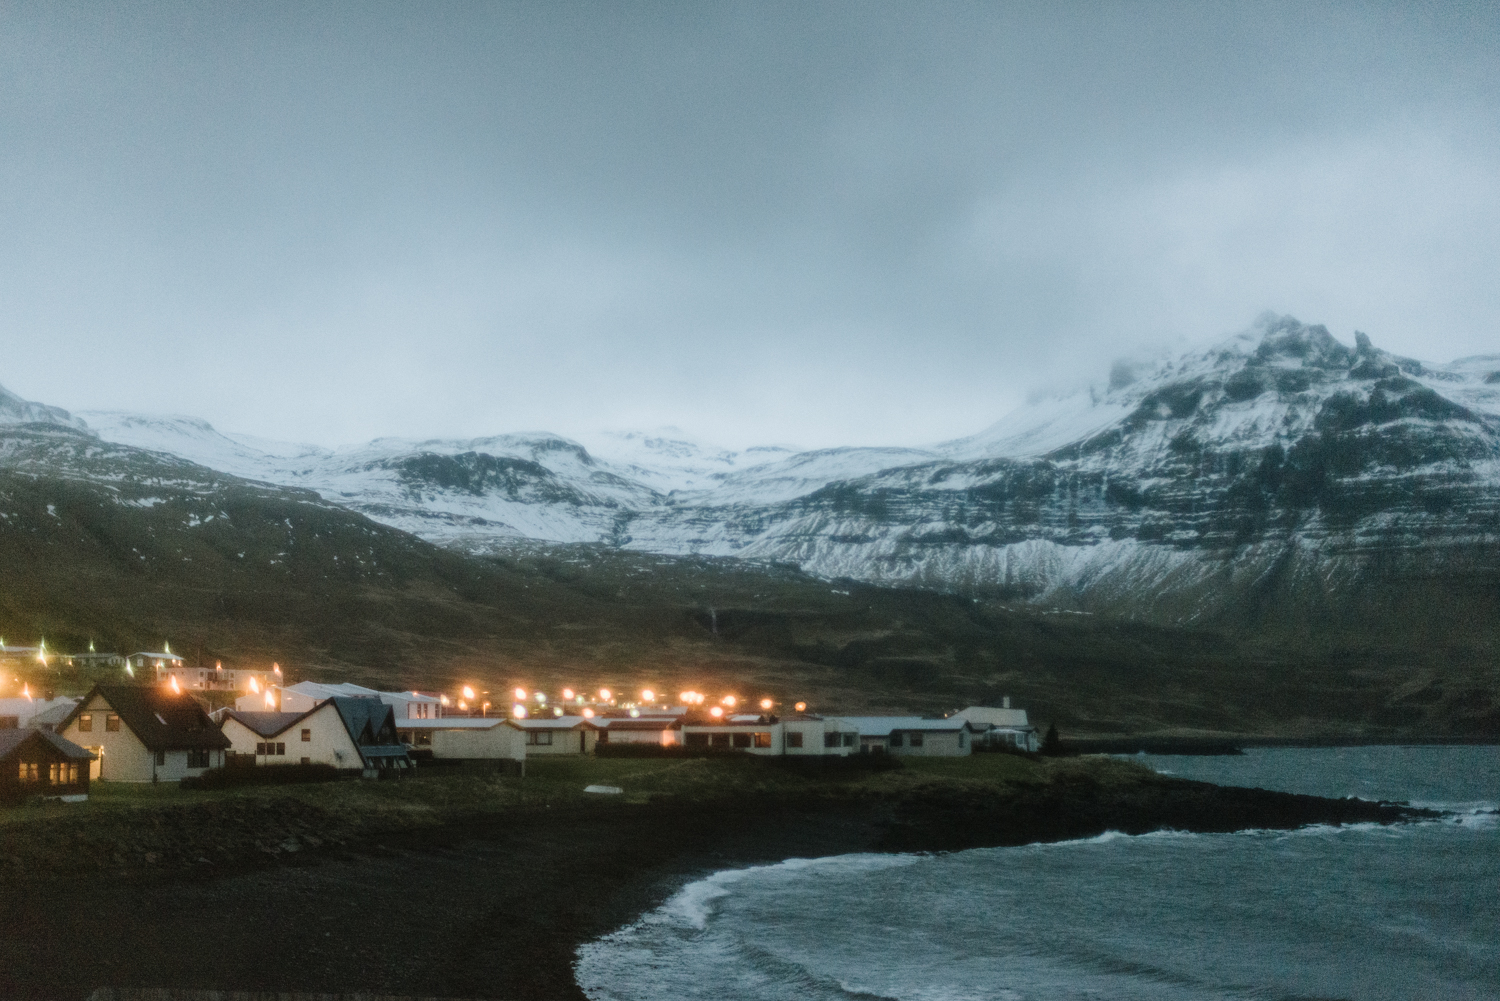 An isolated coastal village shot at dusk with lights on and moun